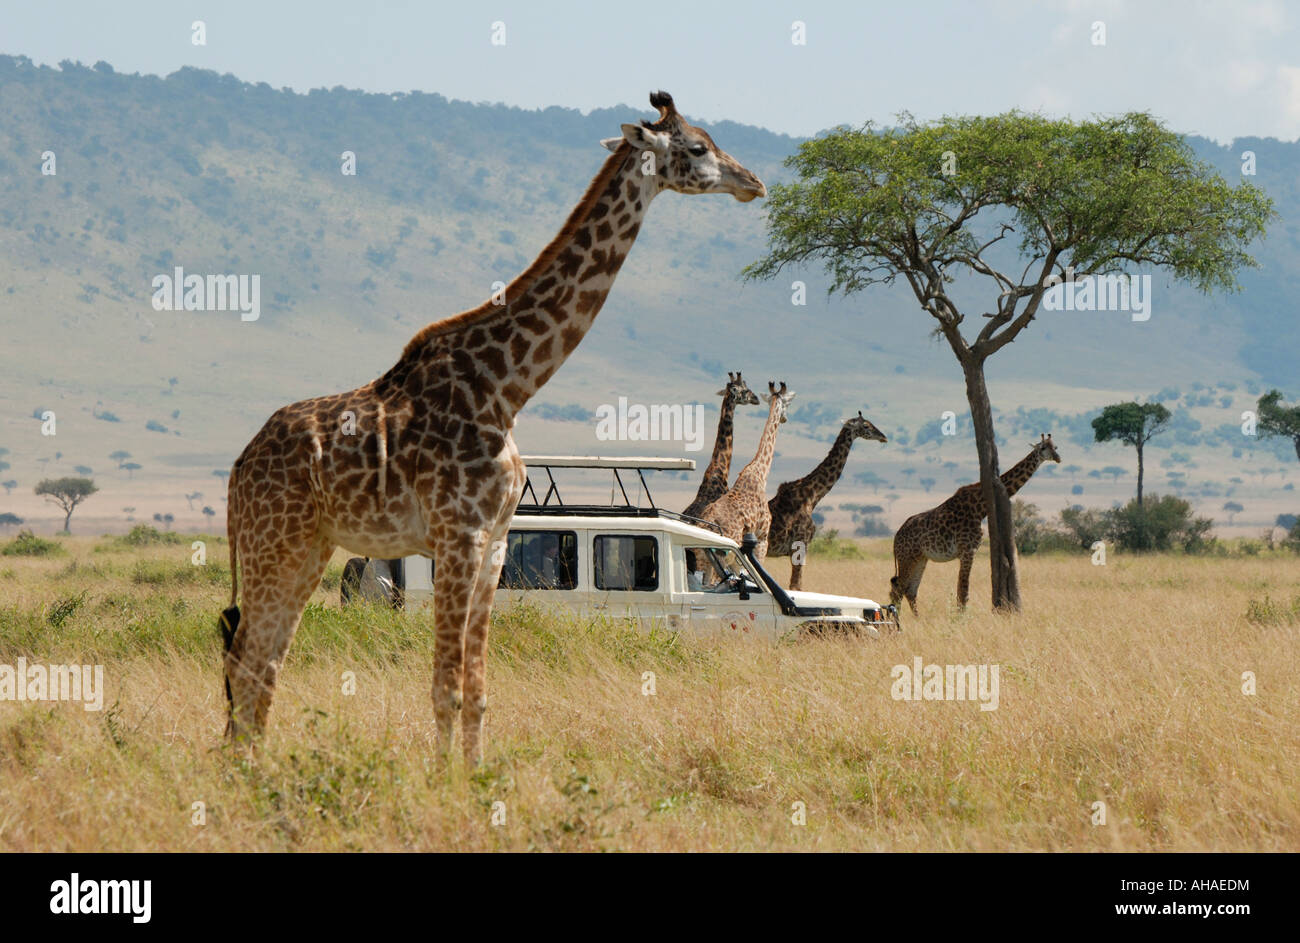 Landcruiser on a game drive with five Masai or Common Giraffe in the Masai Mara National Reserve Kenya East Africa - Stock Image